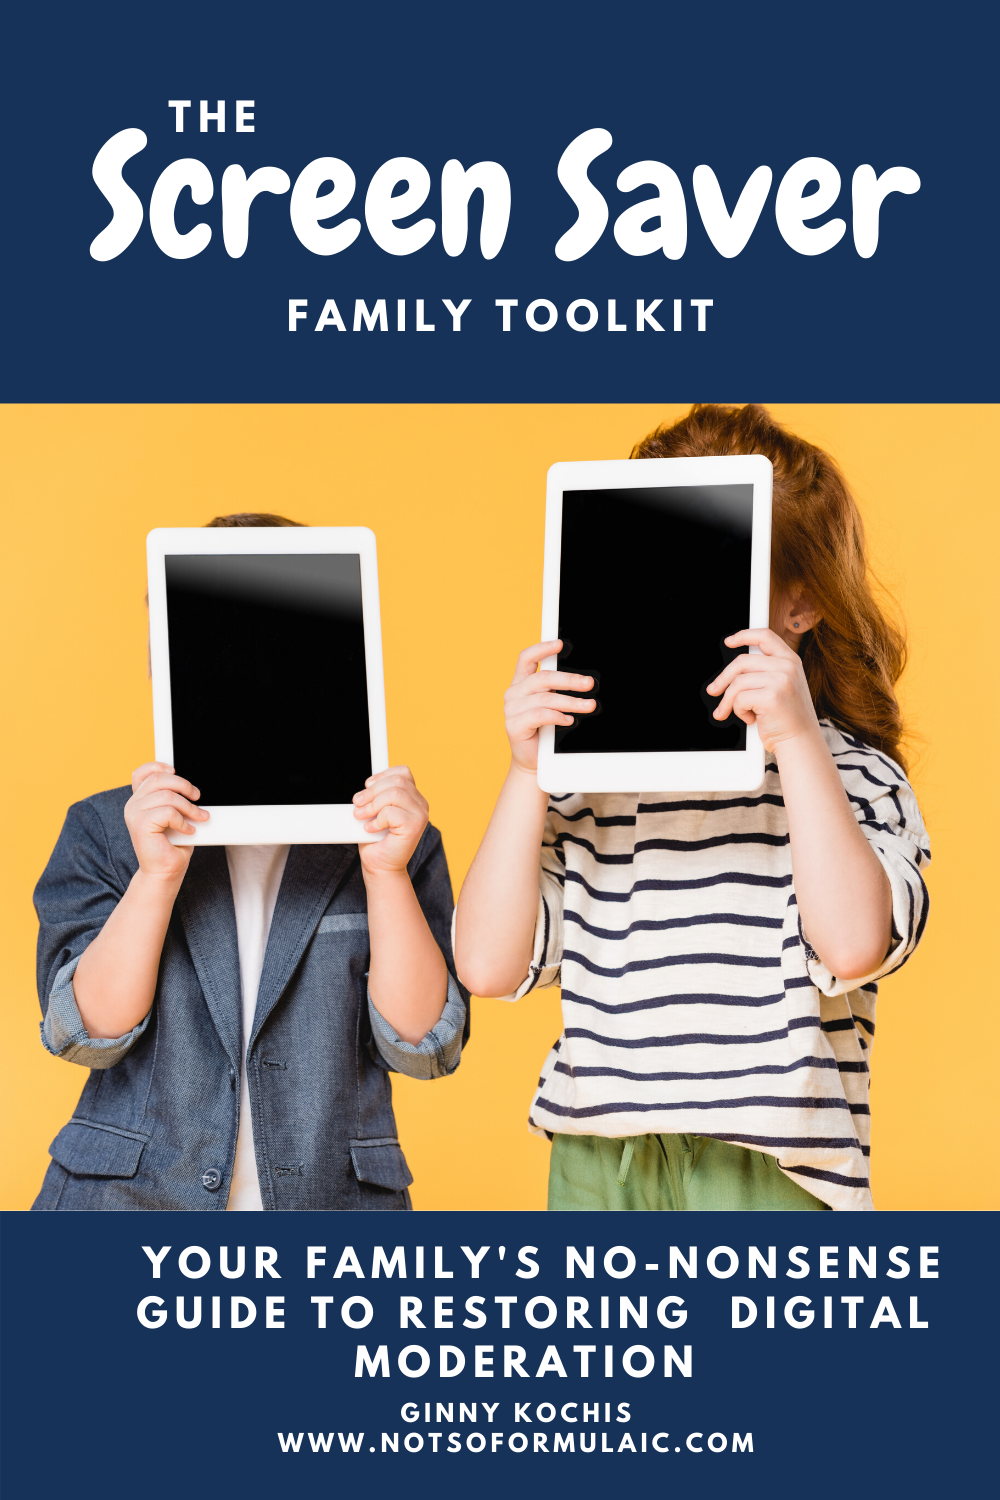 Screen Saver Pin - Screen Saver Family Toolkit: Your No-nonsense Guide To Family Digital Moderation